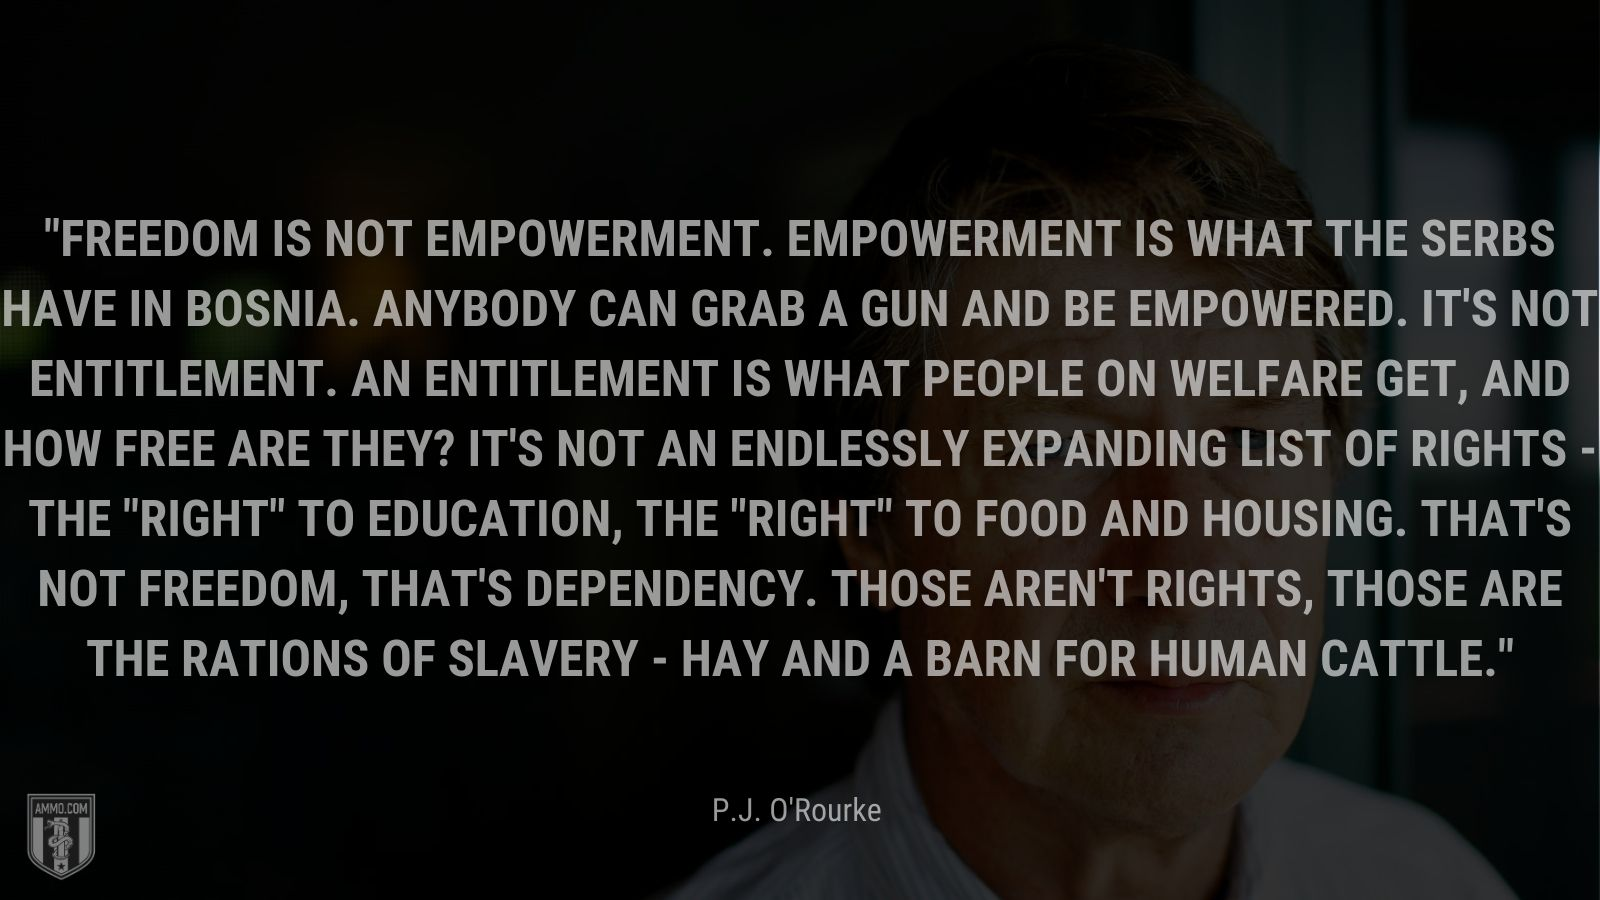 """""""Freedom is not empowerment. Empowerment is what the Serbs have in Bosnia. Anybody can grab a gun and be empowered. It's not entitlement. An entitlement is what people on welfare get, and how free are they? It's not an endlessly expanding list of rights - the"""